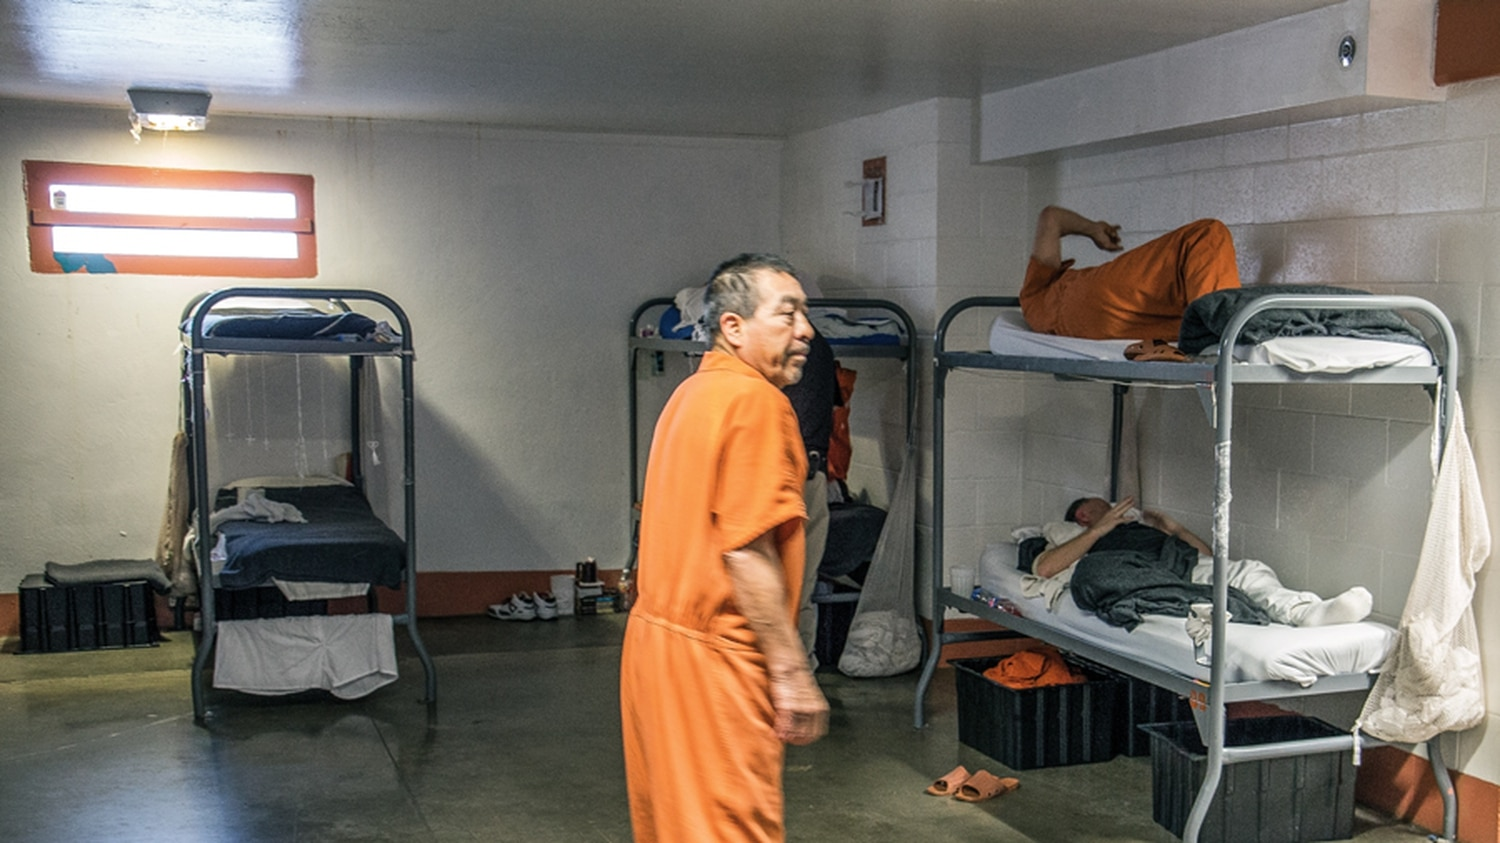 The Delta cells blocks of the jail are structured like a dormitory. A class action lawsuit filed by inmates says the entire building was contaminated by toxic dust and fumes.